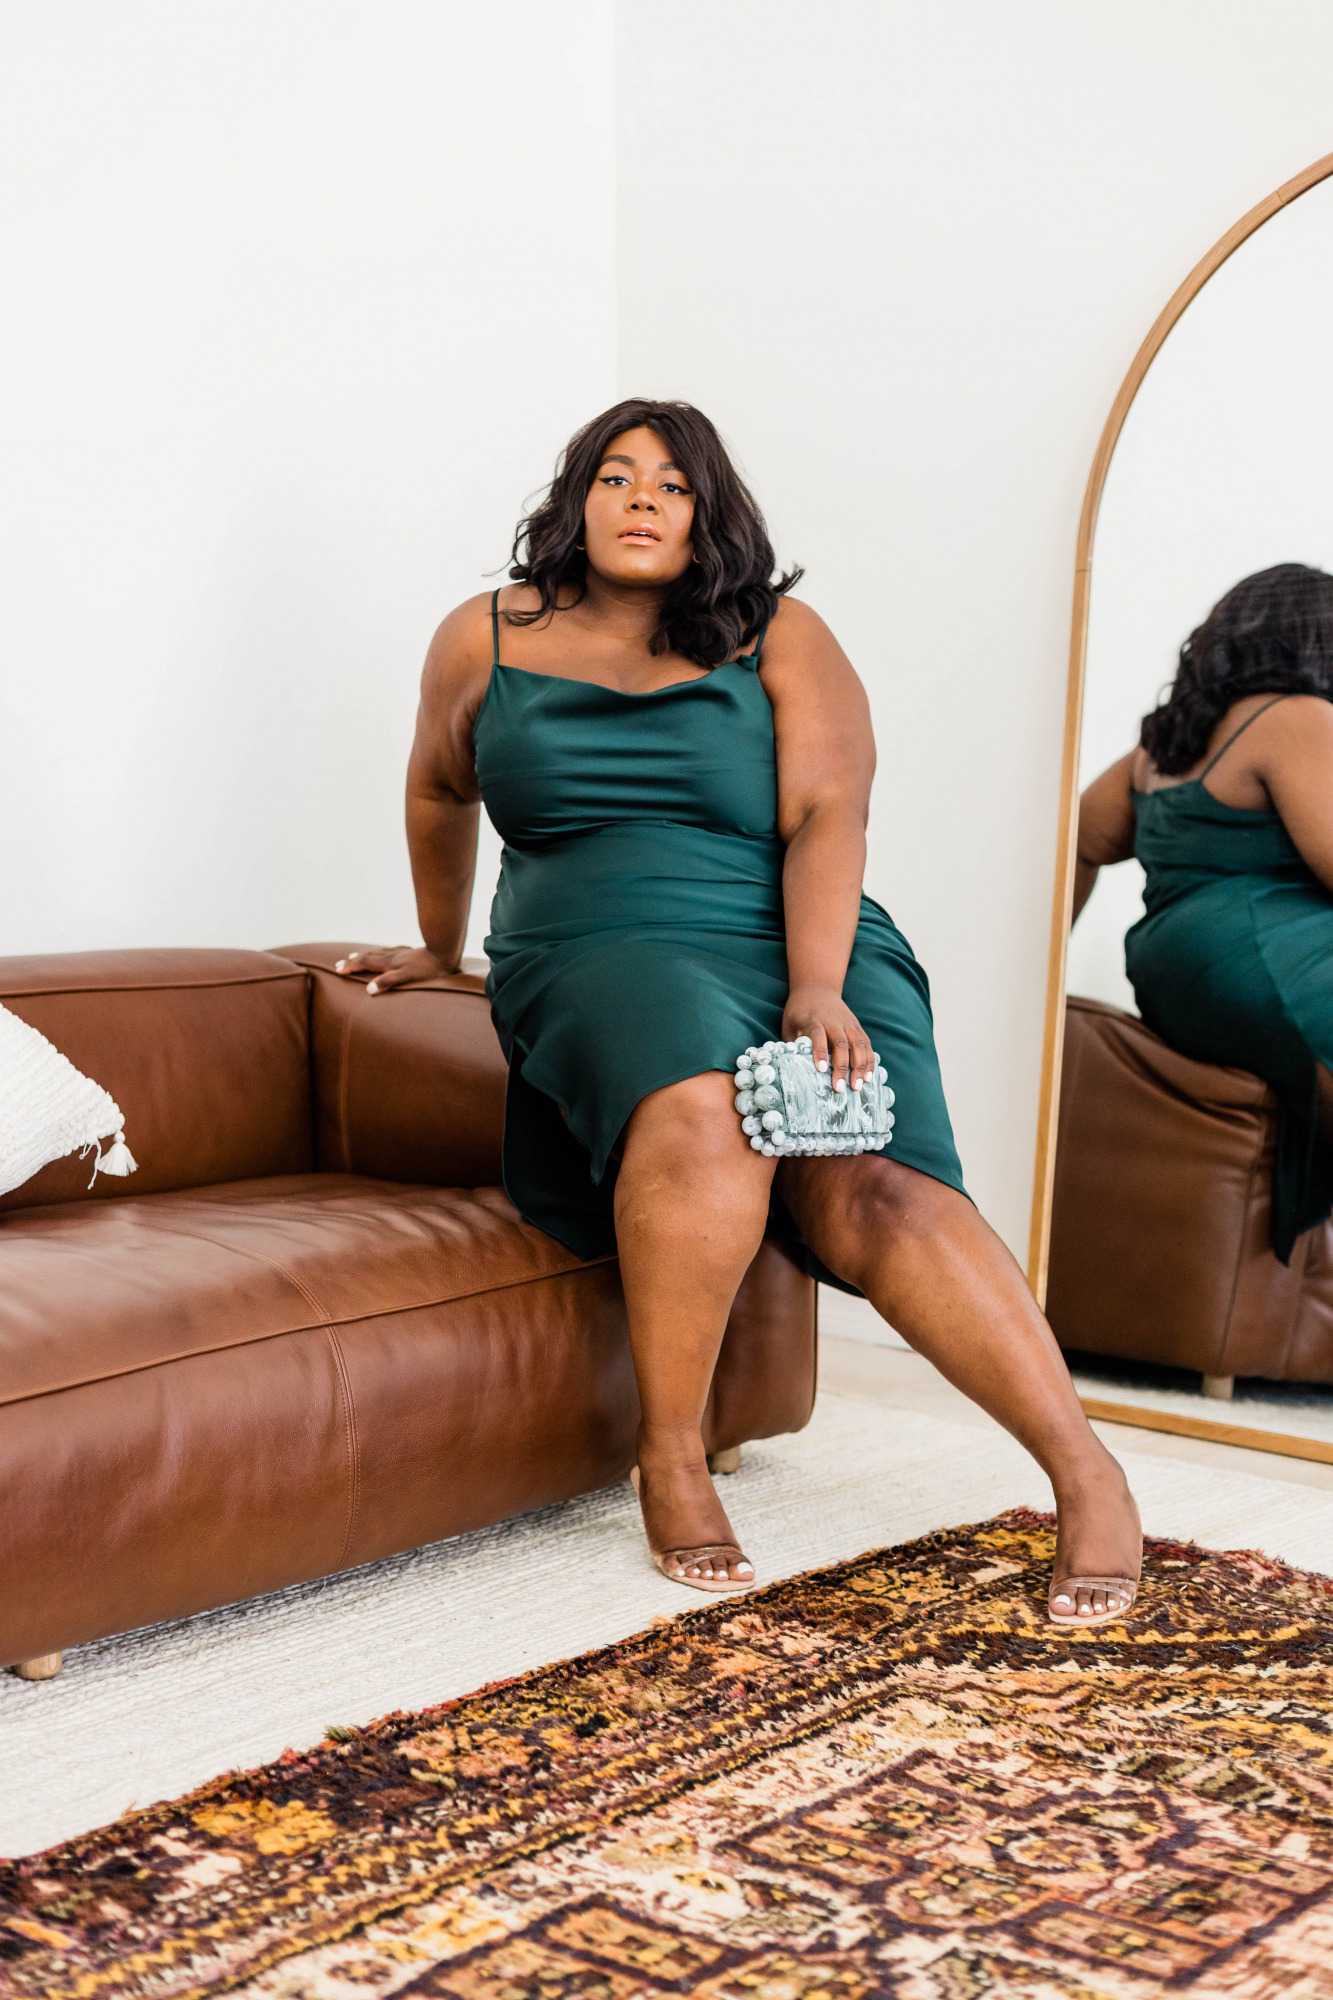 Anthropologie Cali Midi Dress, Plus Size Slip Dress, Plus Size Model, Plus Size Bride, Plus Size Bridesmaid Dress, Plus Size Date Night Outfit Ideas, Leather Couch Model, Urban Outfitters Tabitha Arc Mirror